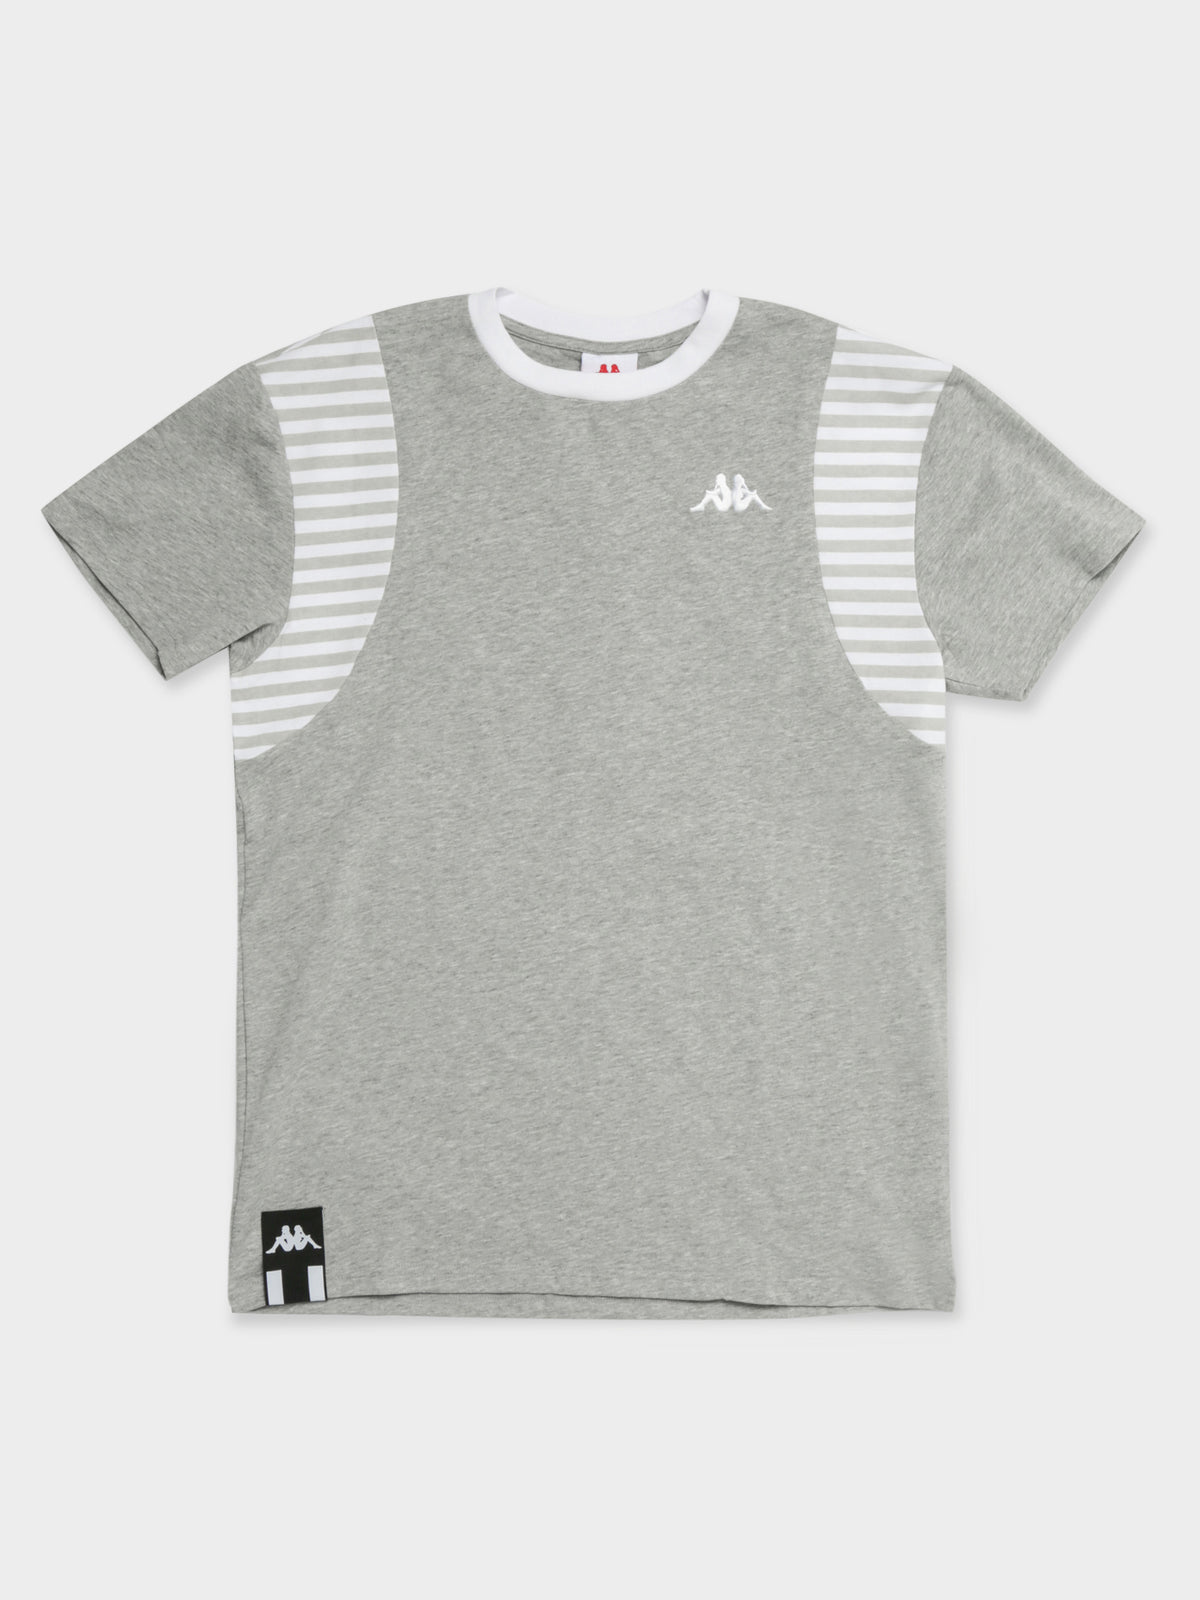 Authentic La Beleno T-Shirt in Grey